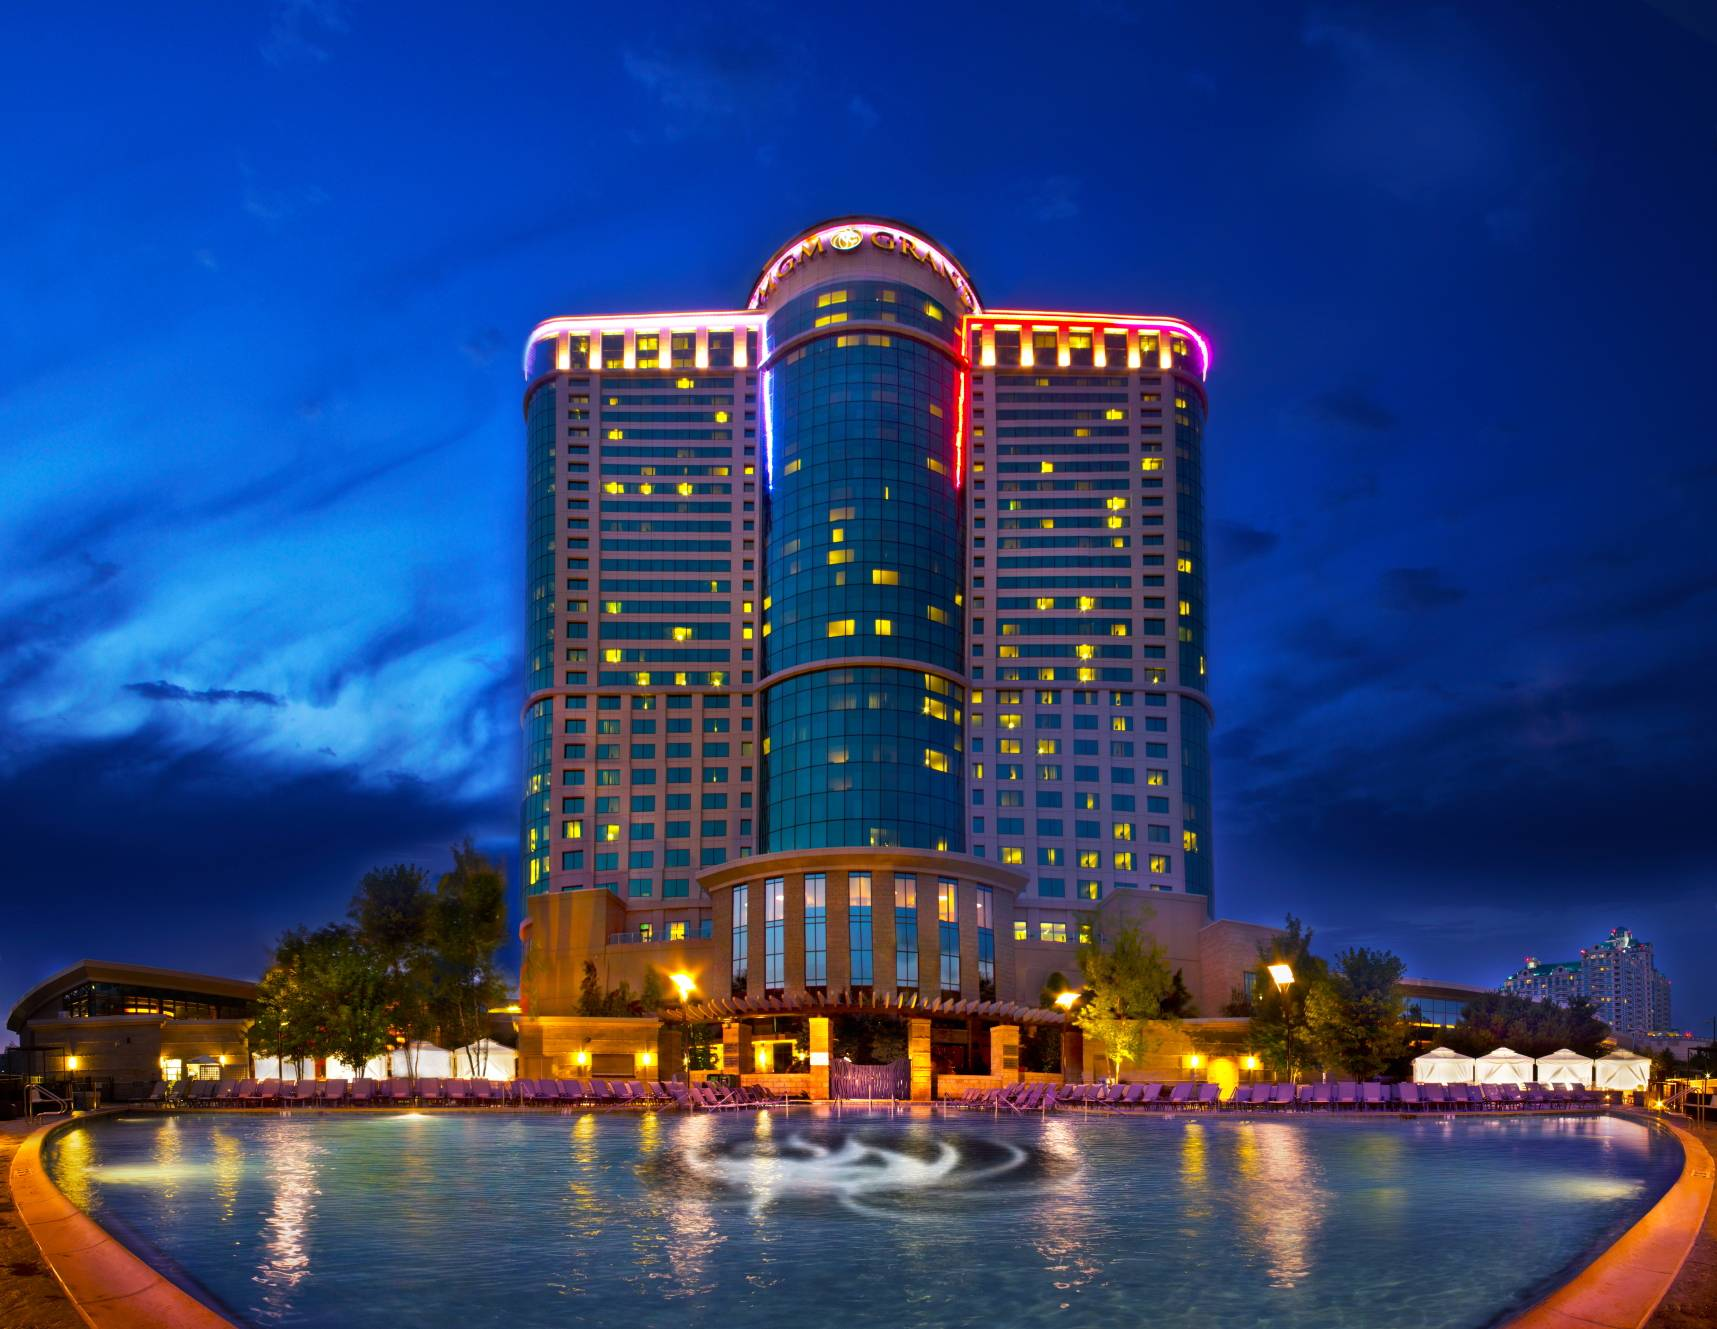 Mashantucket casino palace hotel and casino biloxi